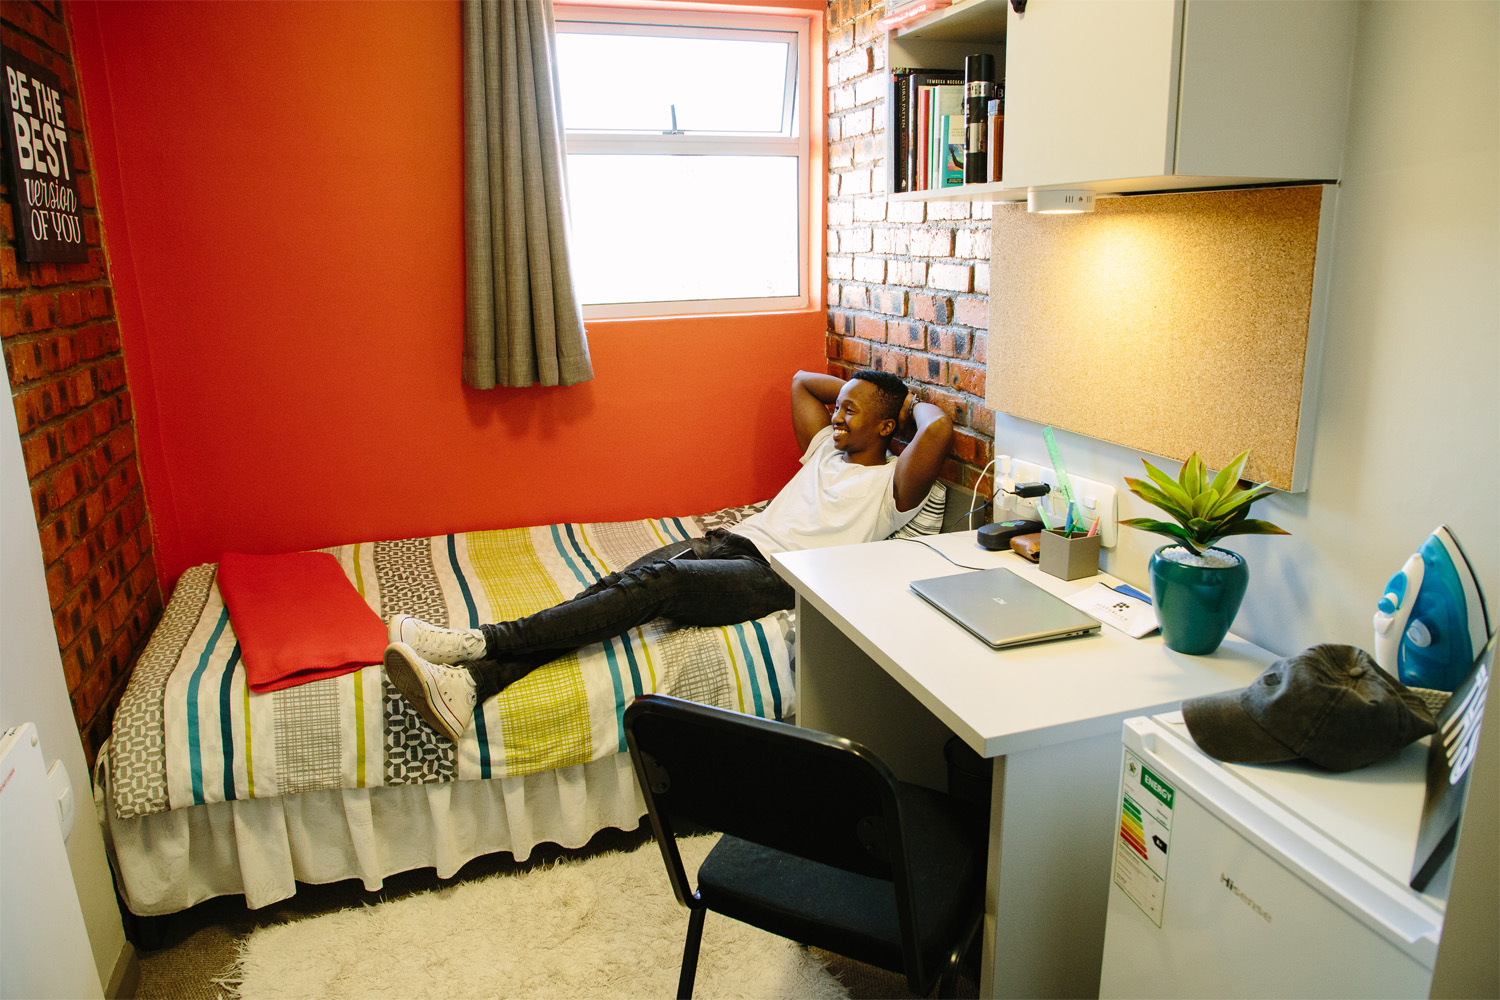 Lincoln_House_Dorm_Room2